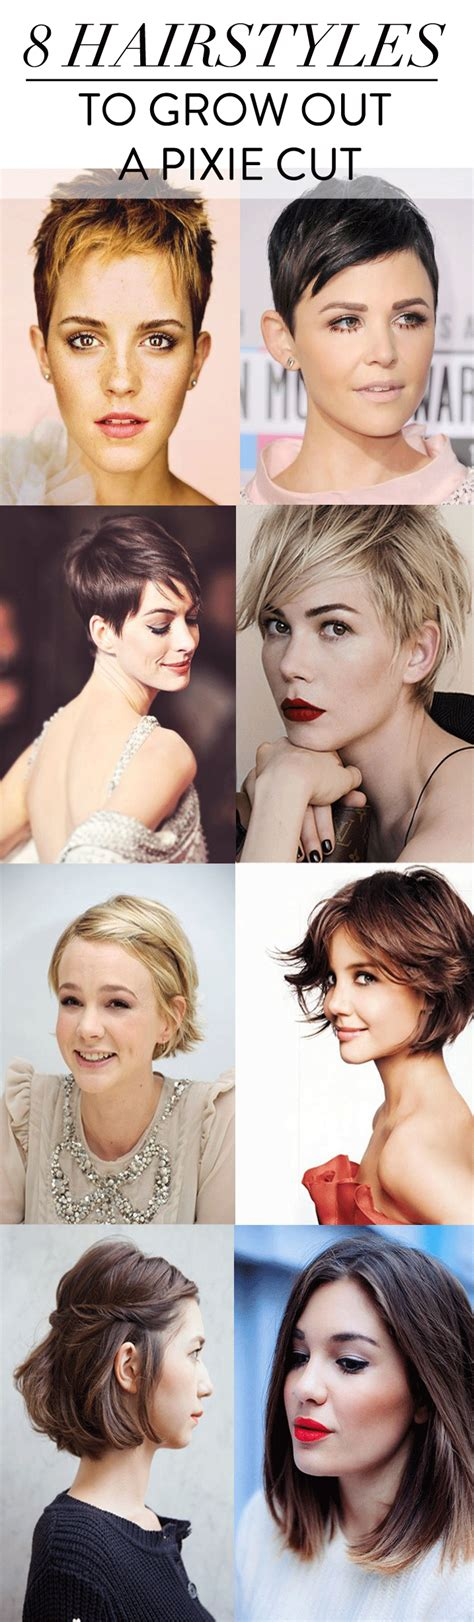 hairstyles when growing out a pixie cut how to grow out a pixie cut charmingly styled